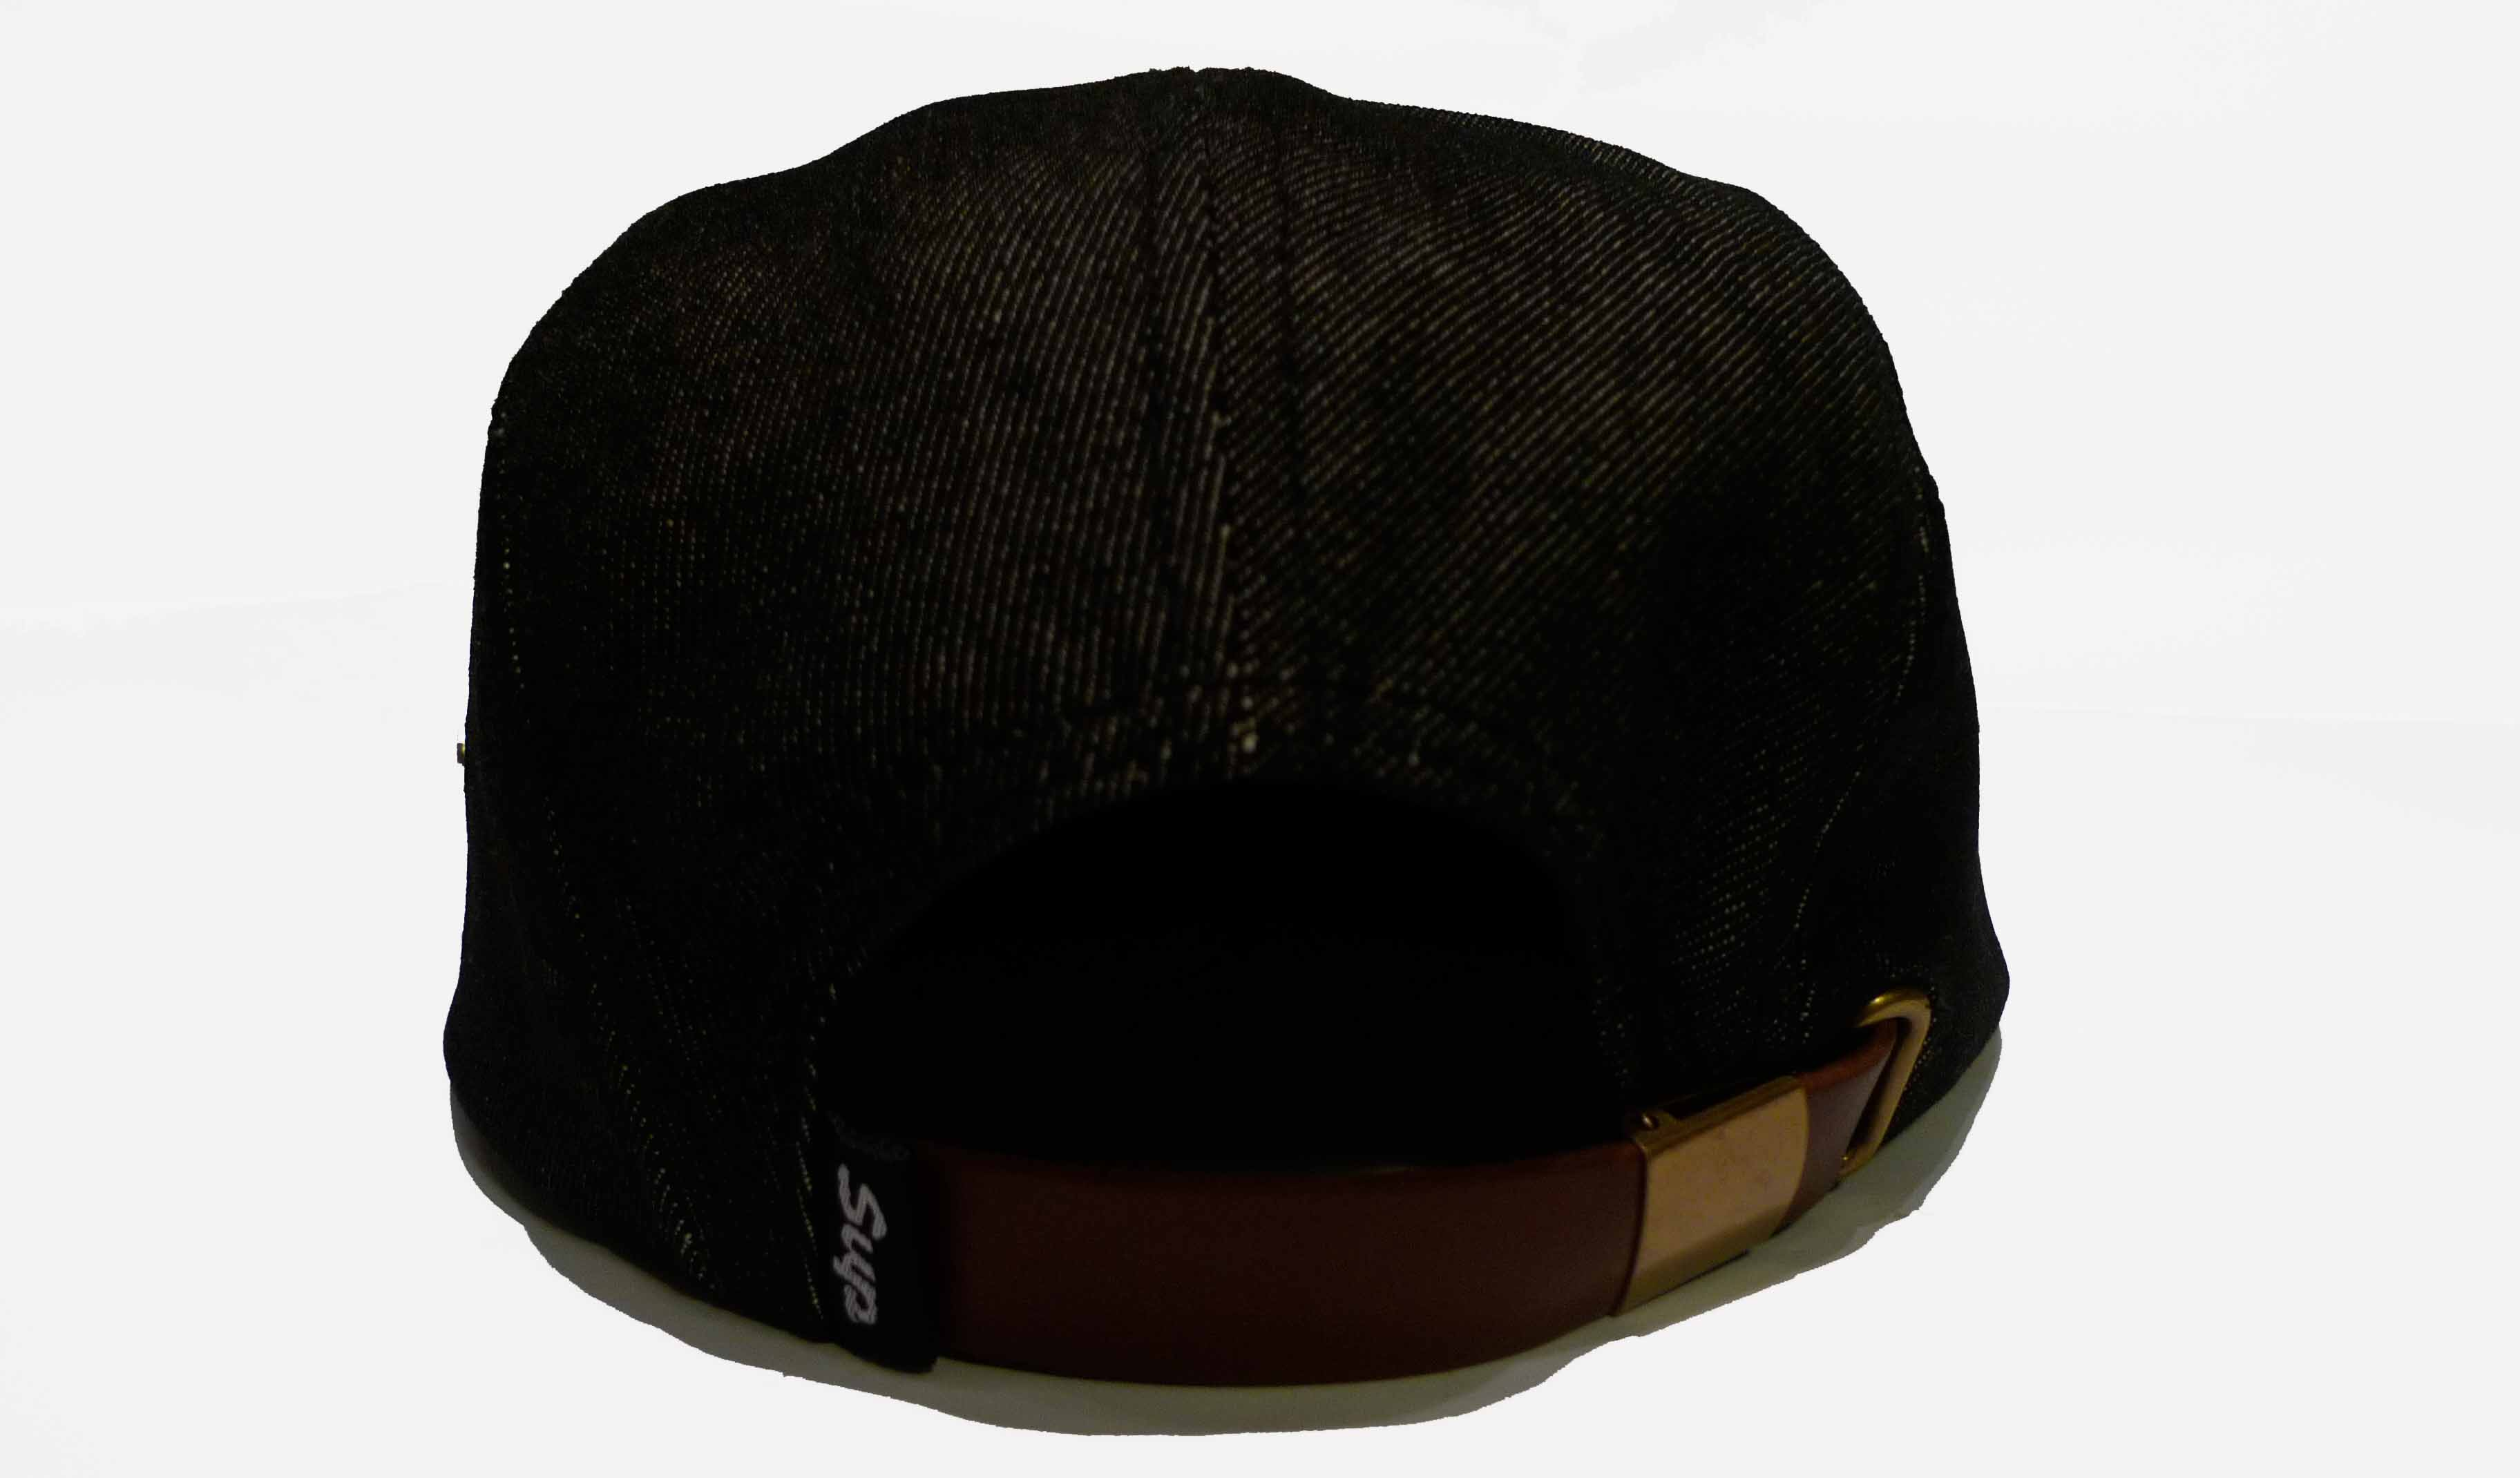 2495e3c804e7e Black Denim 5 Panel Hat with Leather Strap and Brass Buckle. Black Corduroy  Snapback Hat